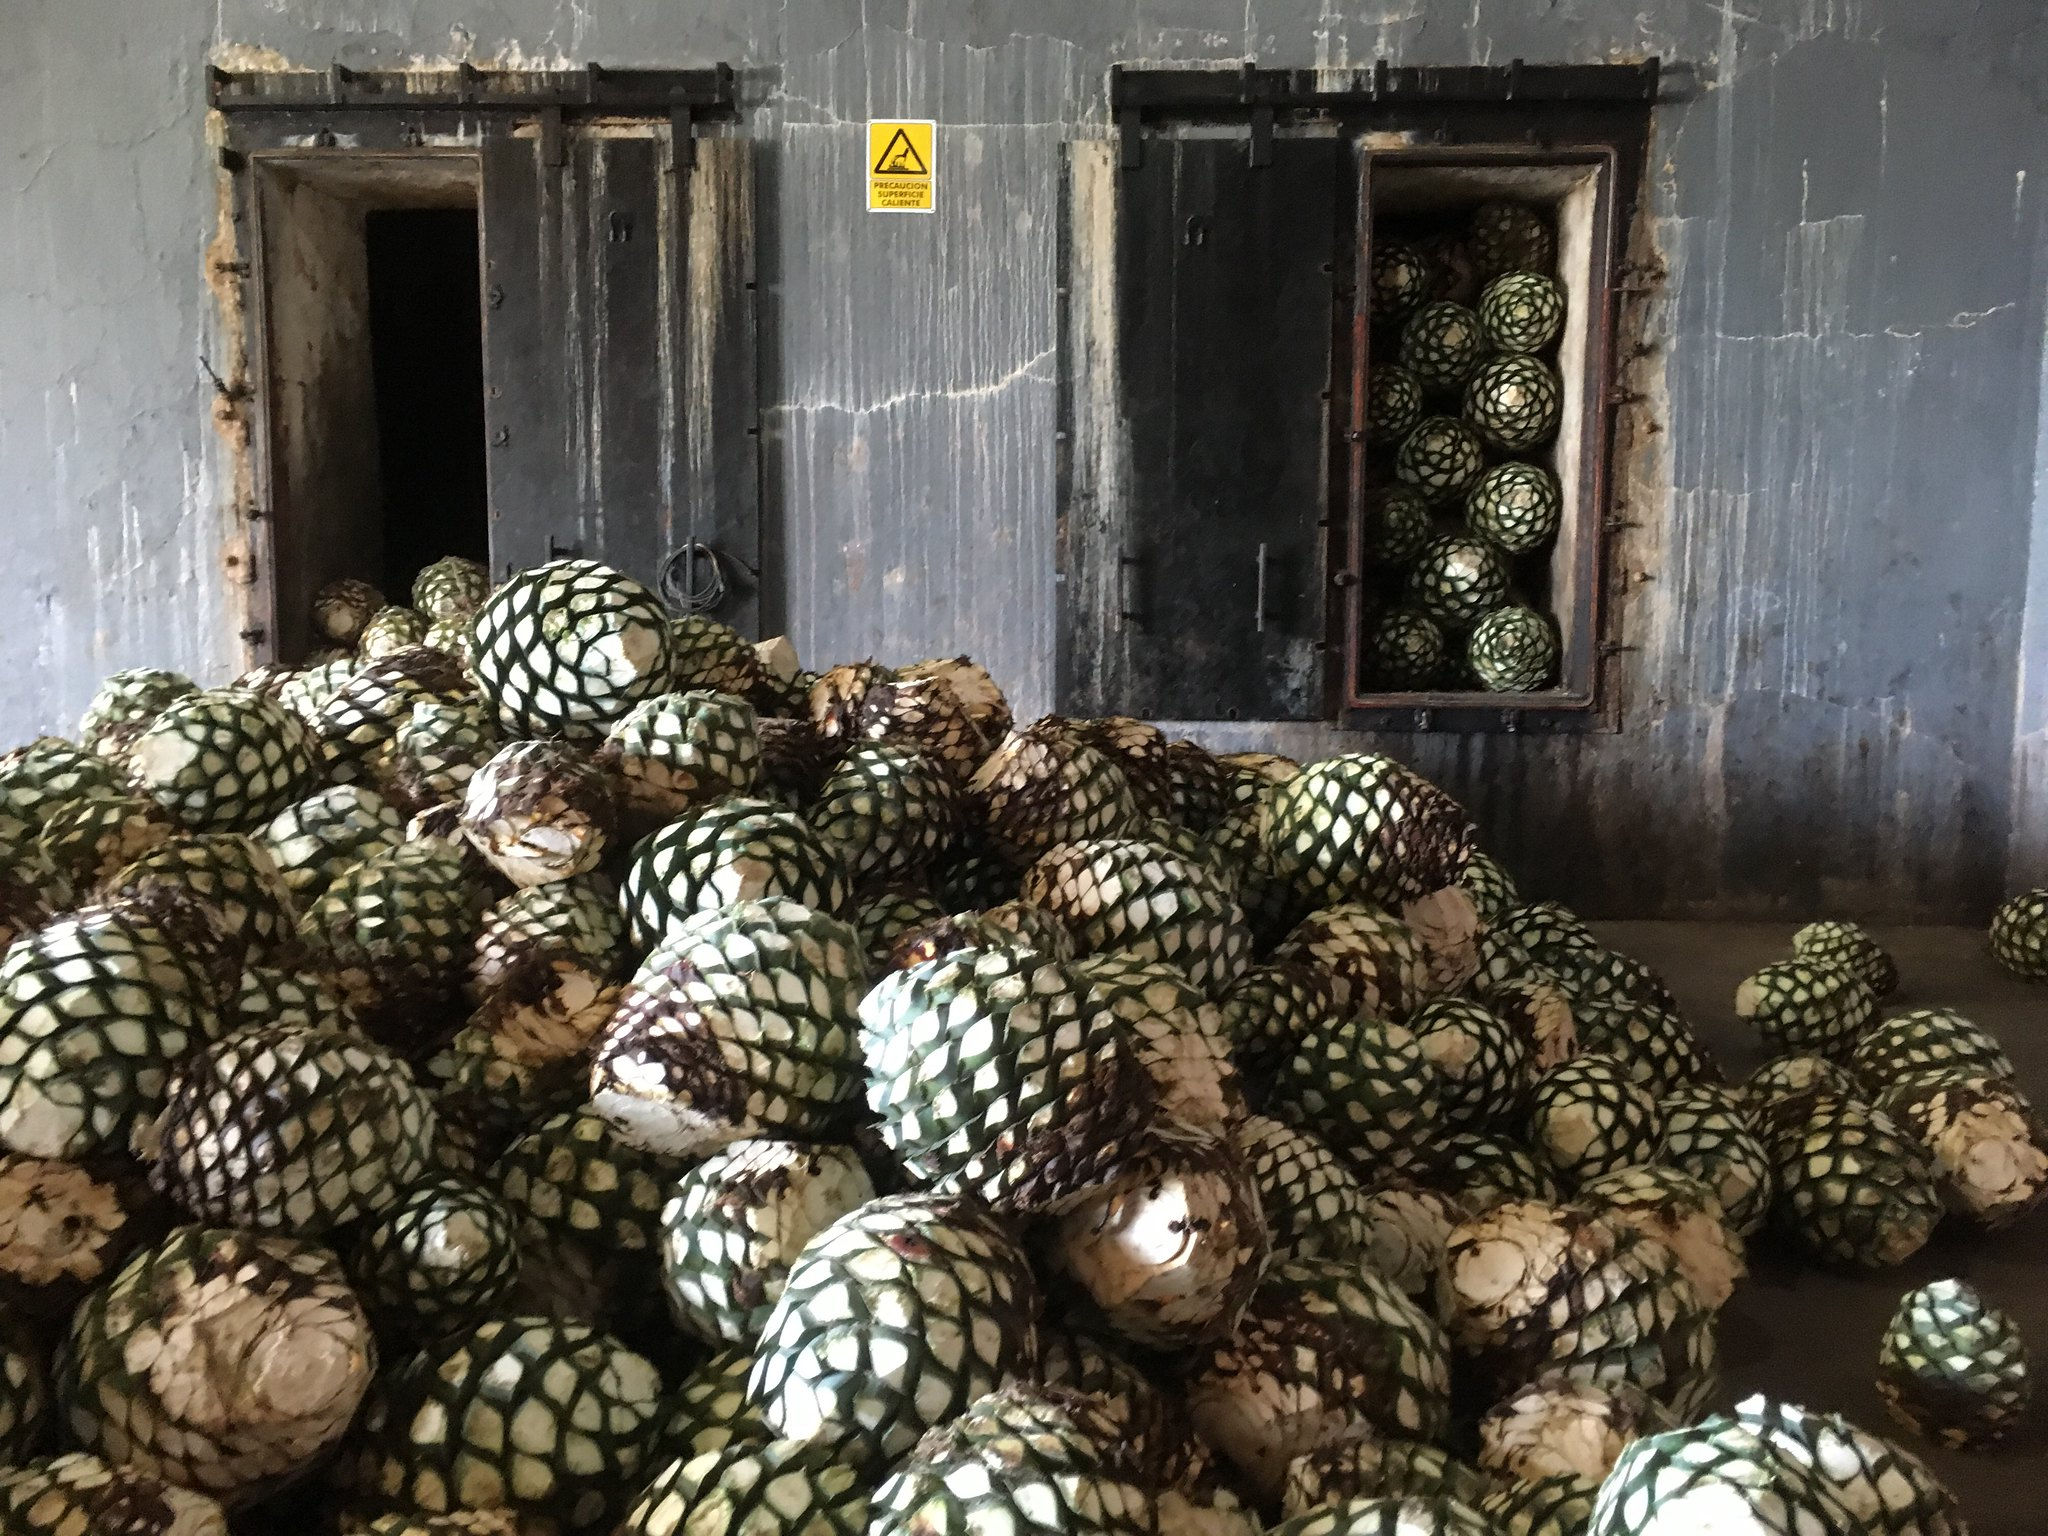 Agave piñas ready to be slow cooked, Tequila, Jalisco, México